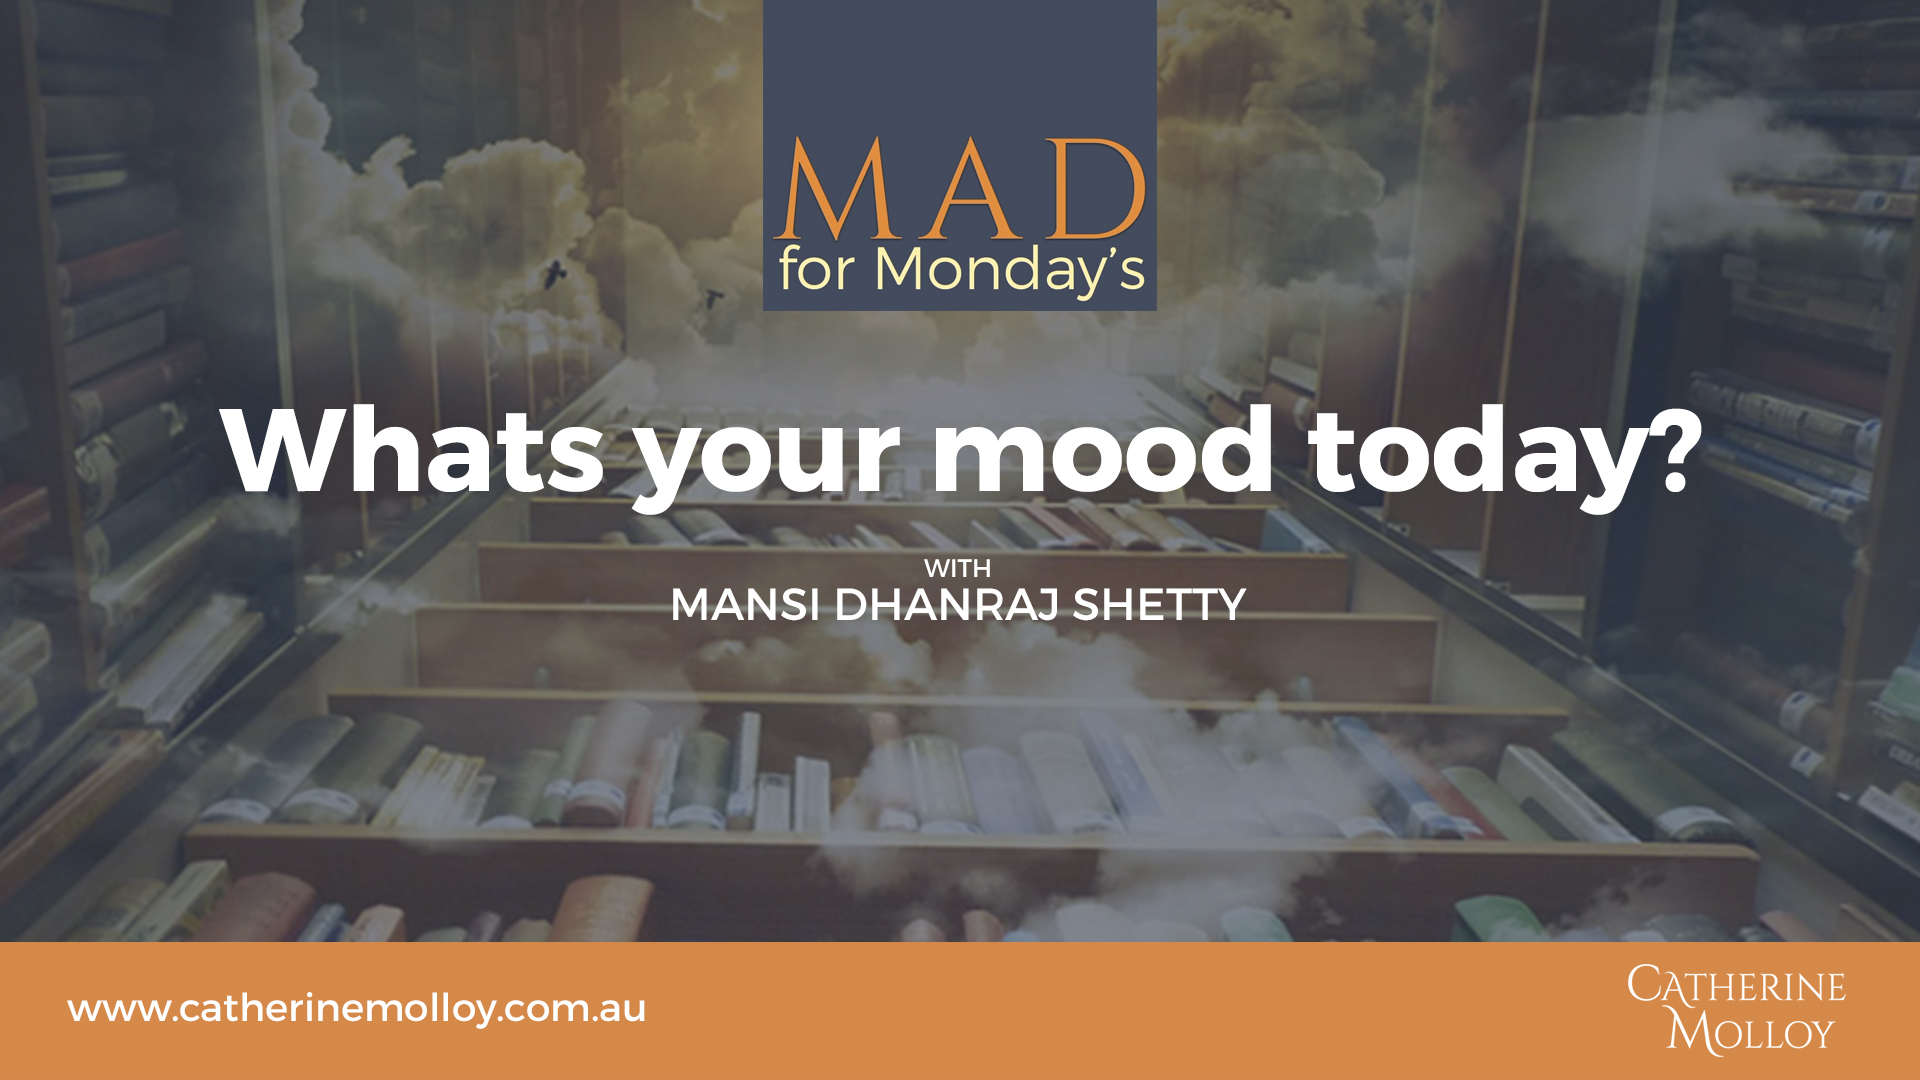 MAD for Monday's – Whats your mood today?